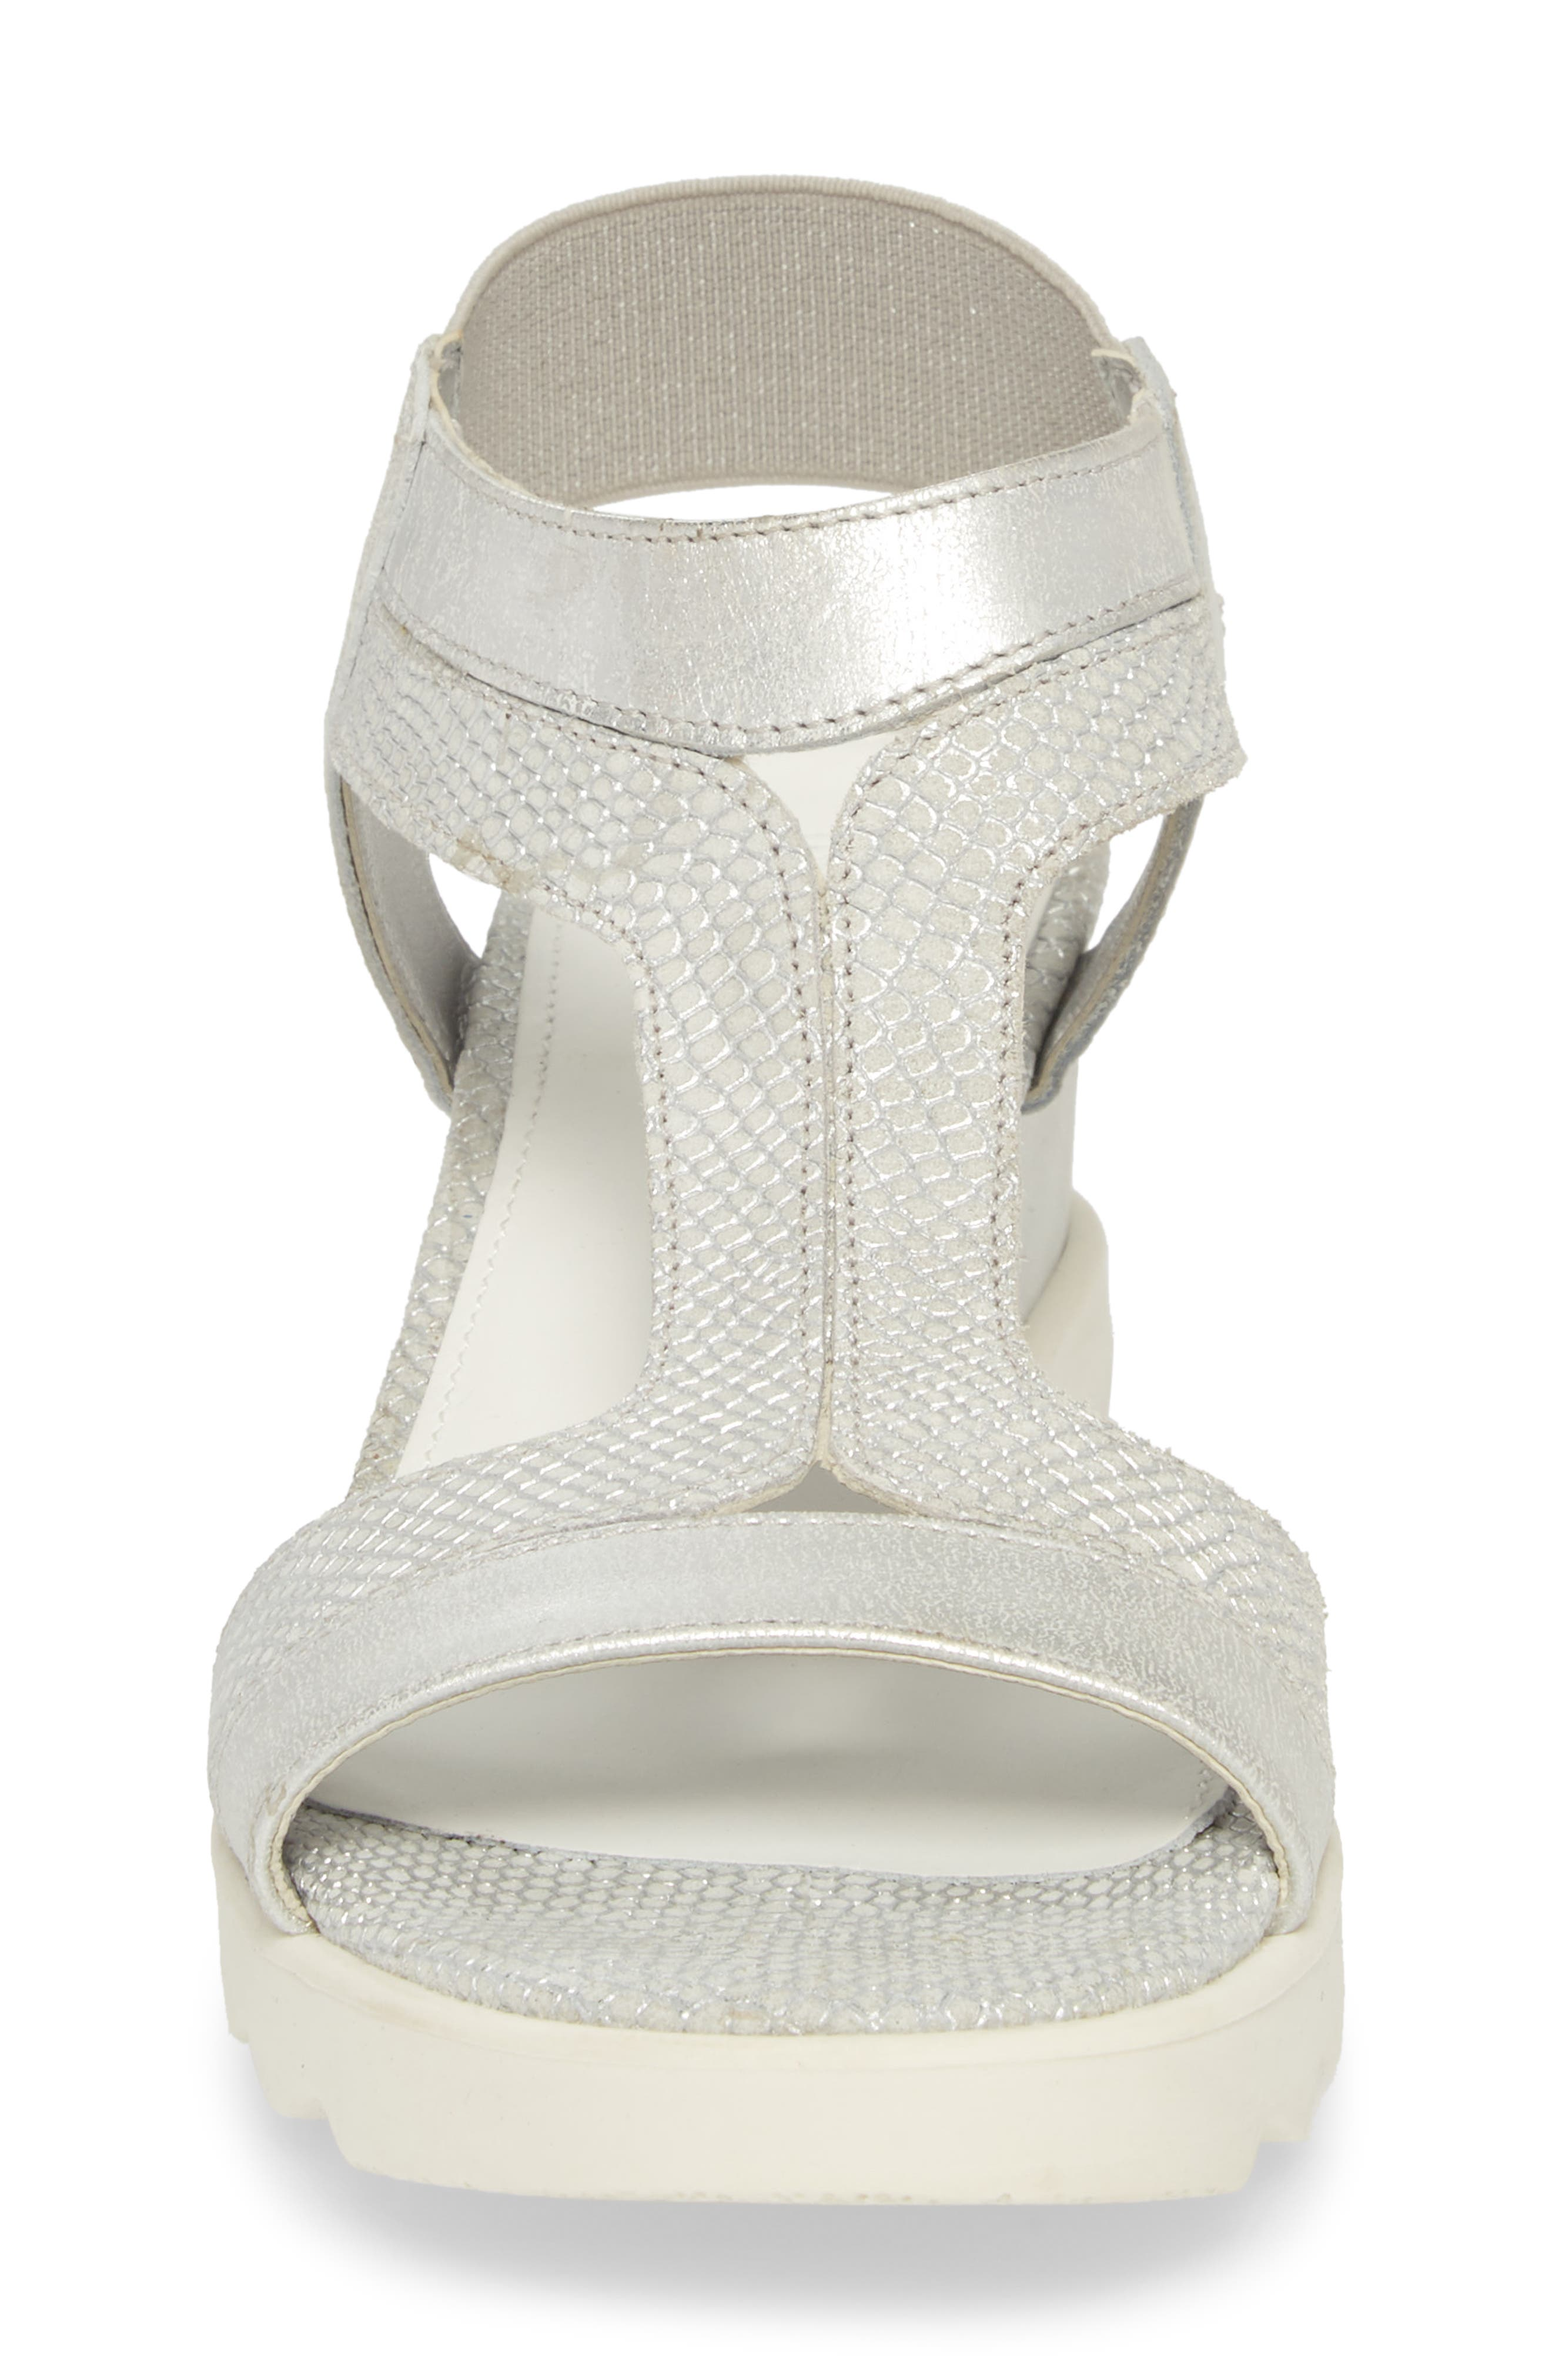 Give A Hoot Wedge Sandal,                             Alternate thumbnail 4, color,                             Silver Leather